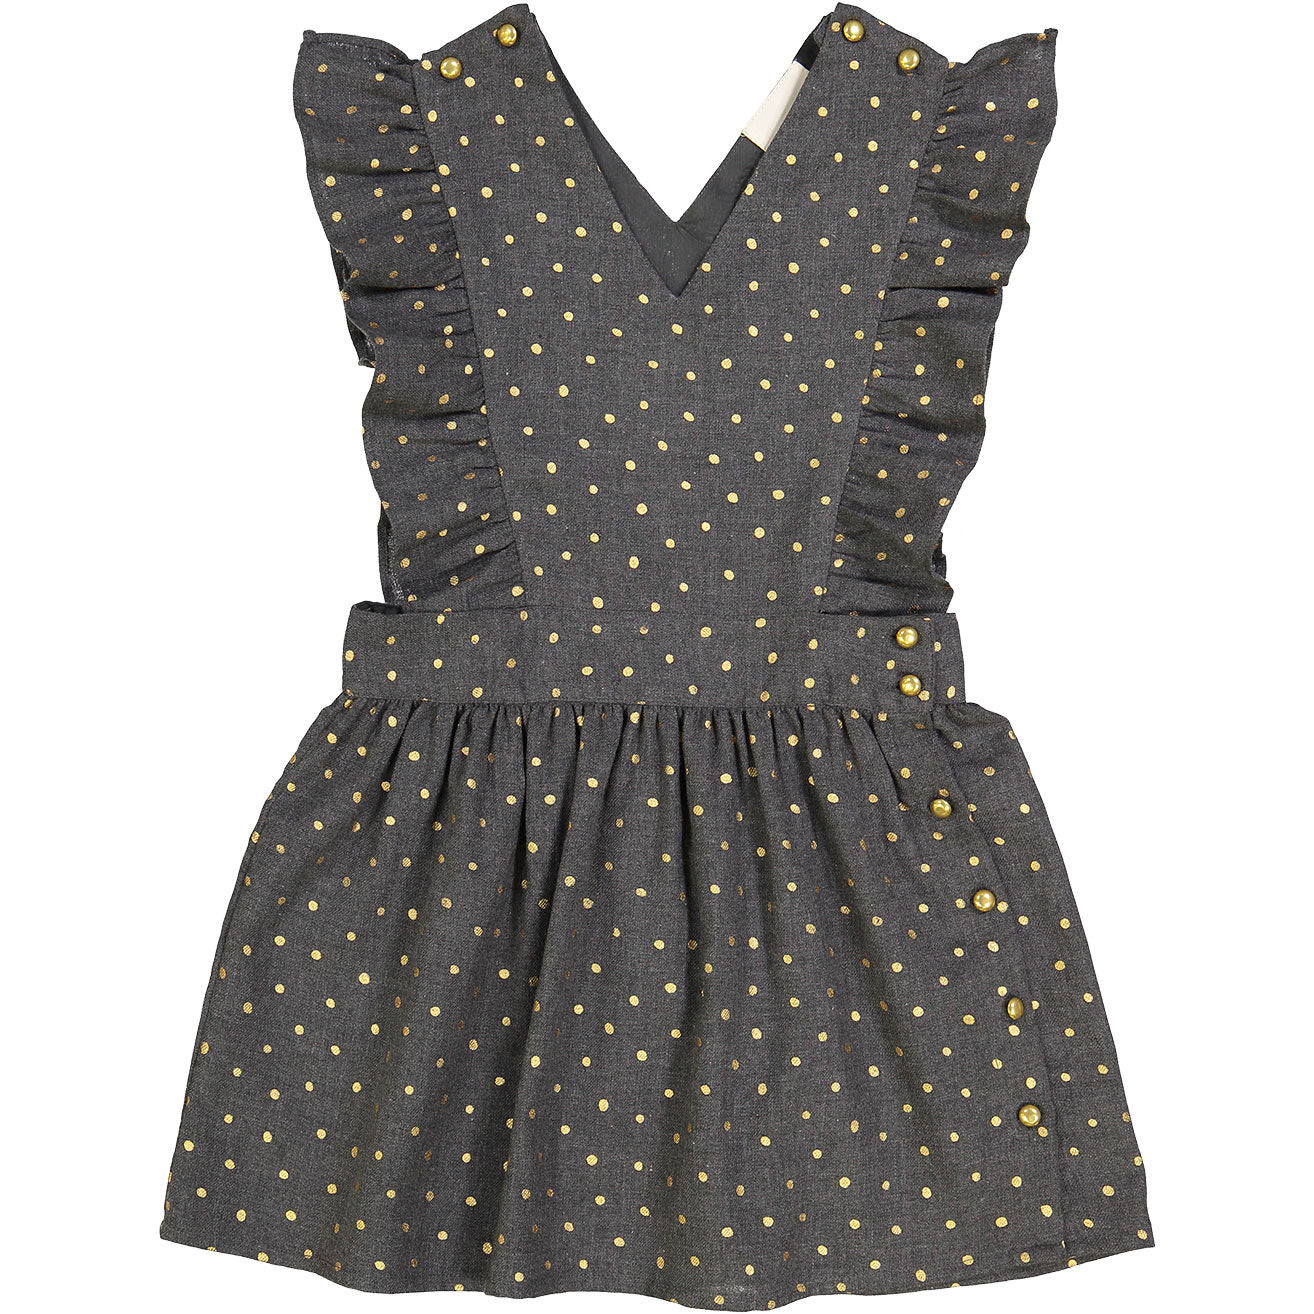 Louis Louise Grey Dot Diana Dress - Ladida